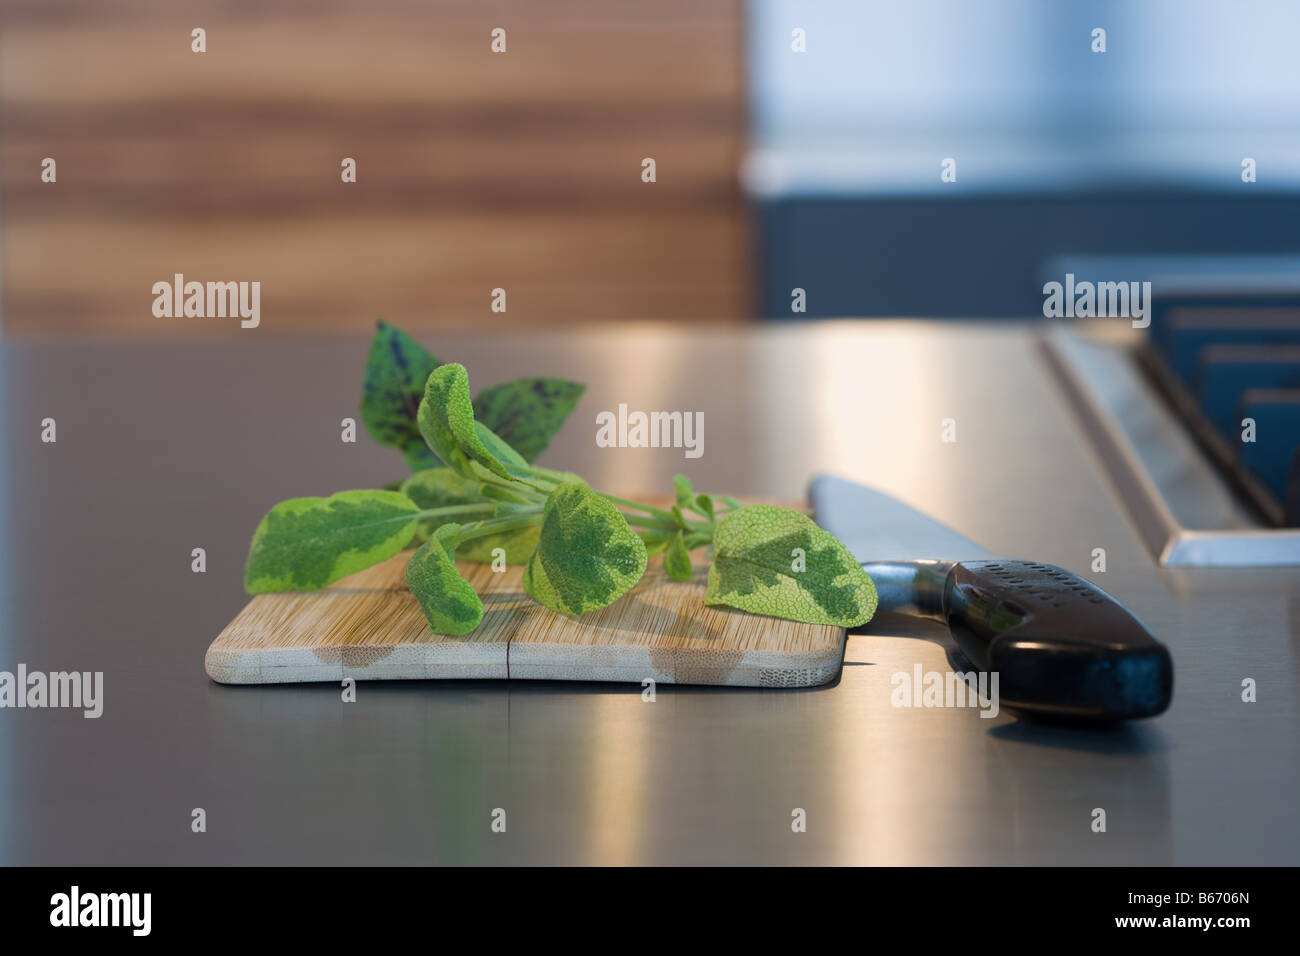 Herb cutting board and knife - Stock Image